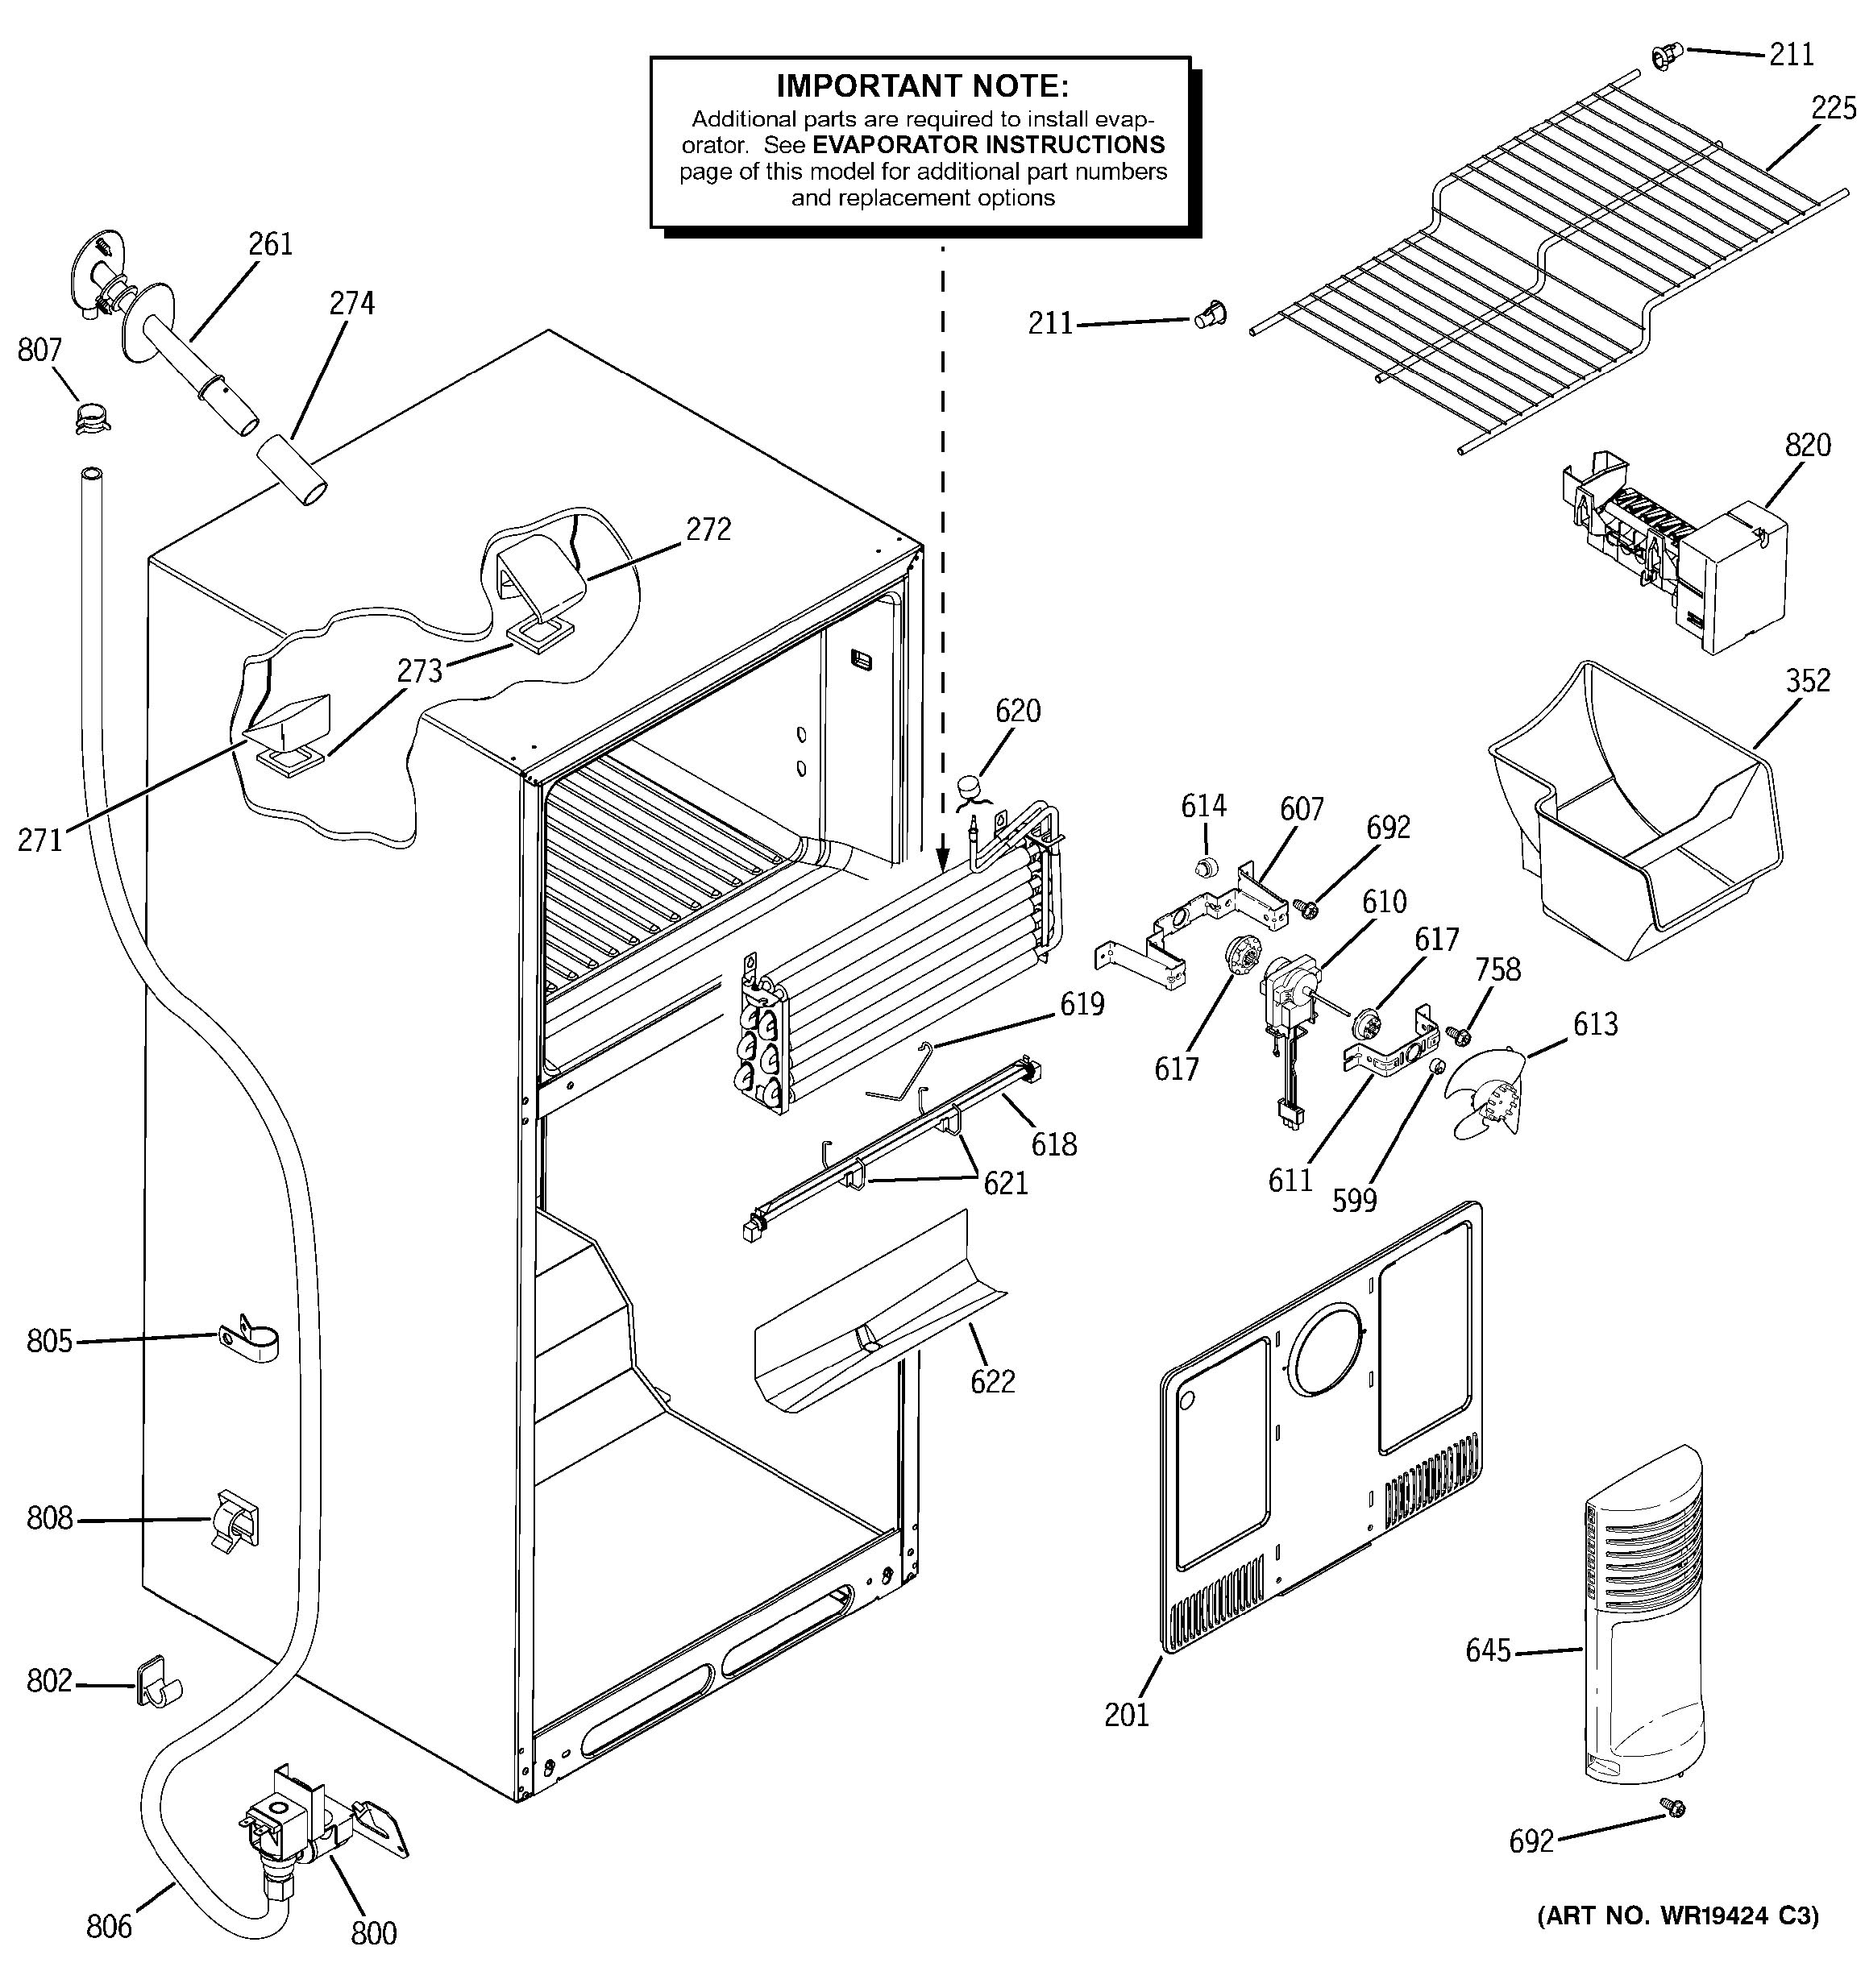 ge dishwasher parts diagram 2001 ford taurus assembly view for freezer section gth18dcrarww